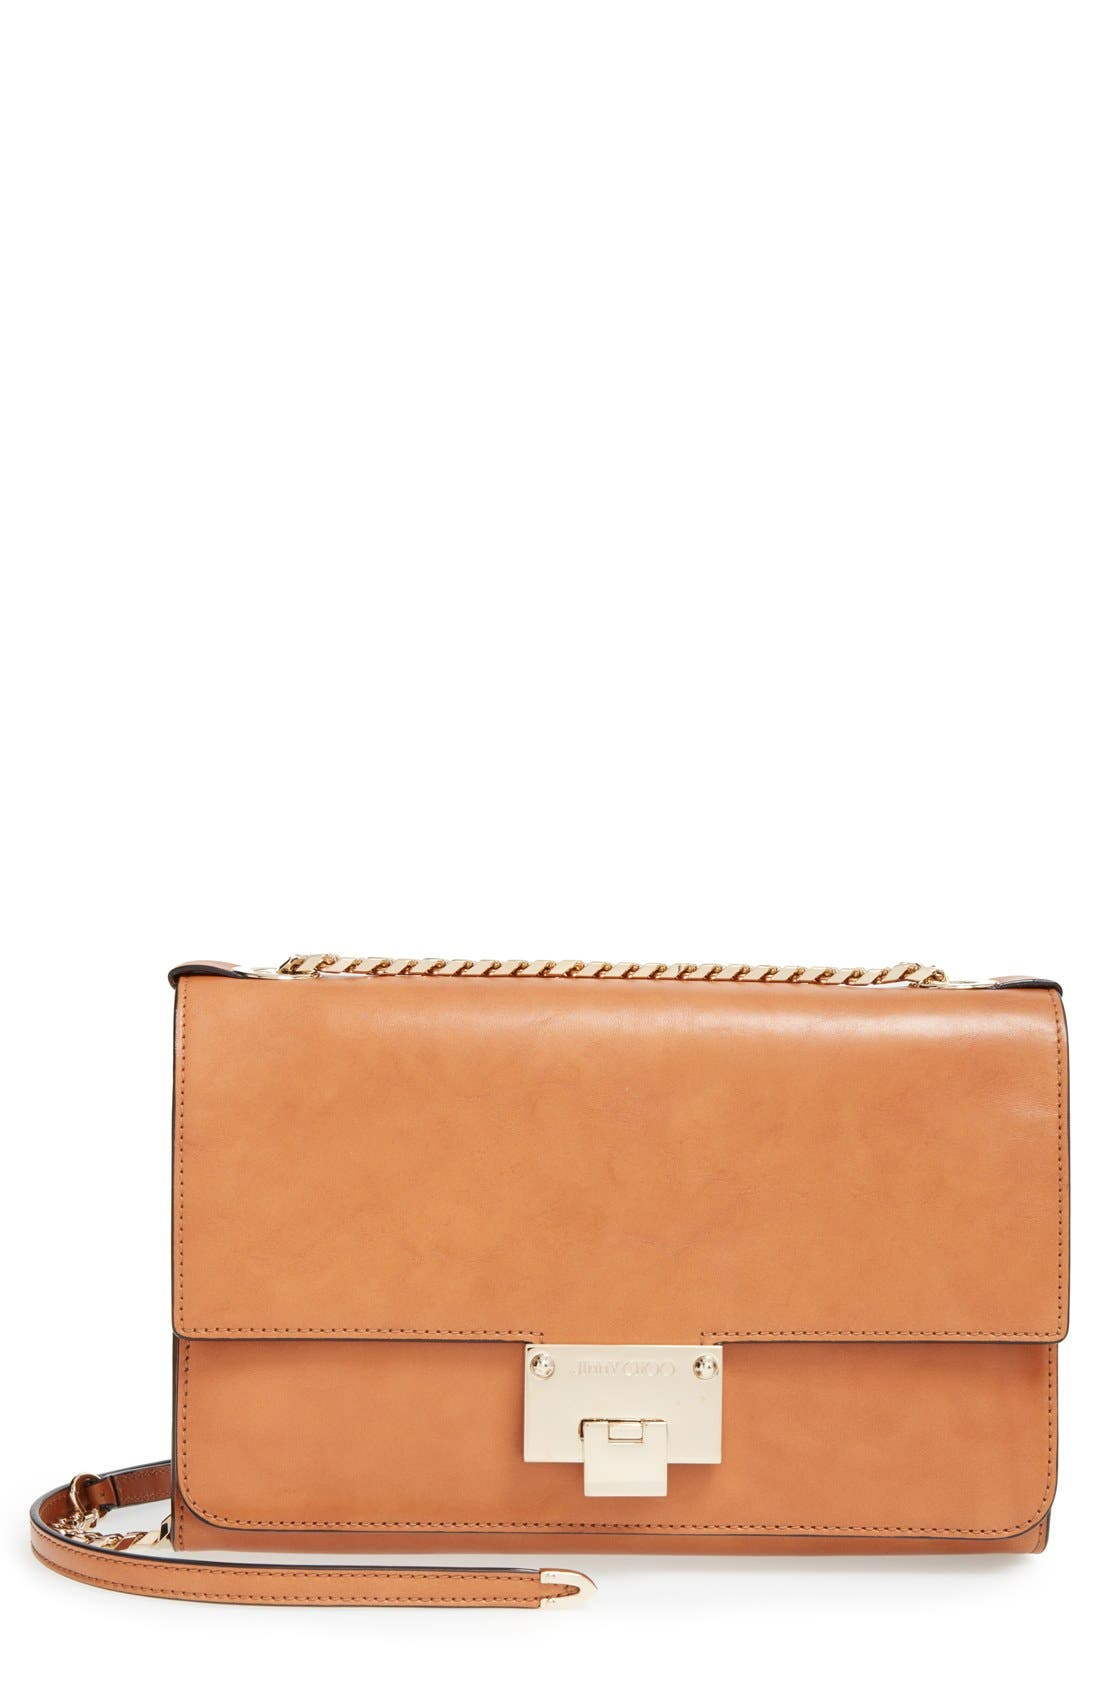 JIMMY CHOO 'Rebel' Shoulder Bag